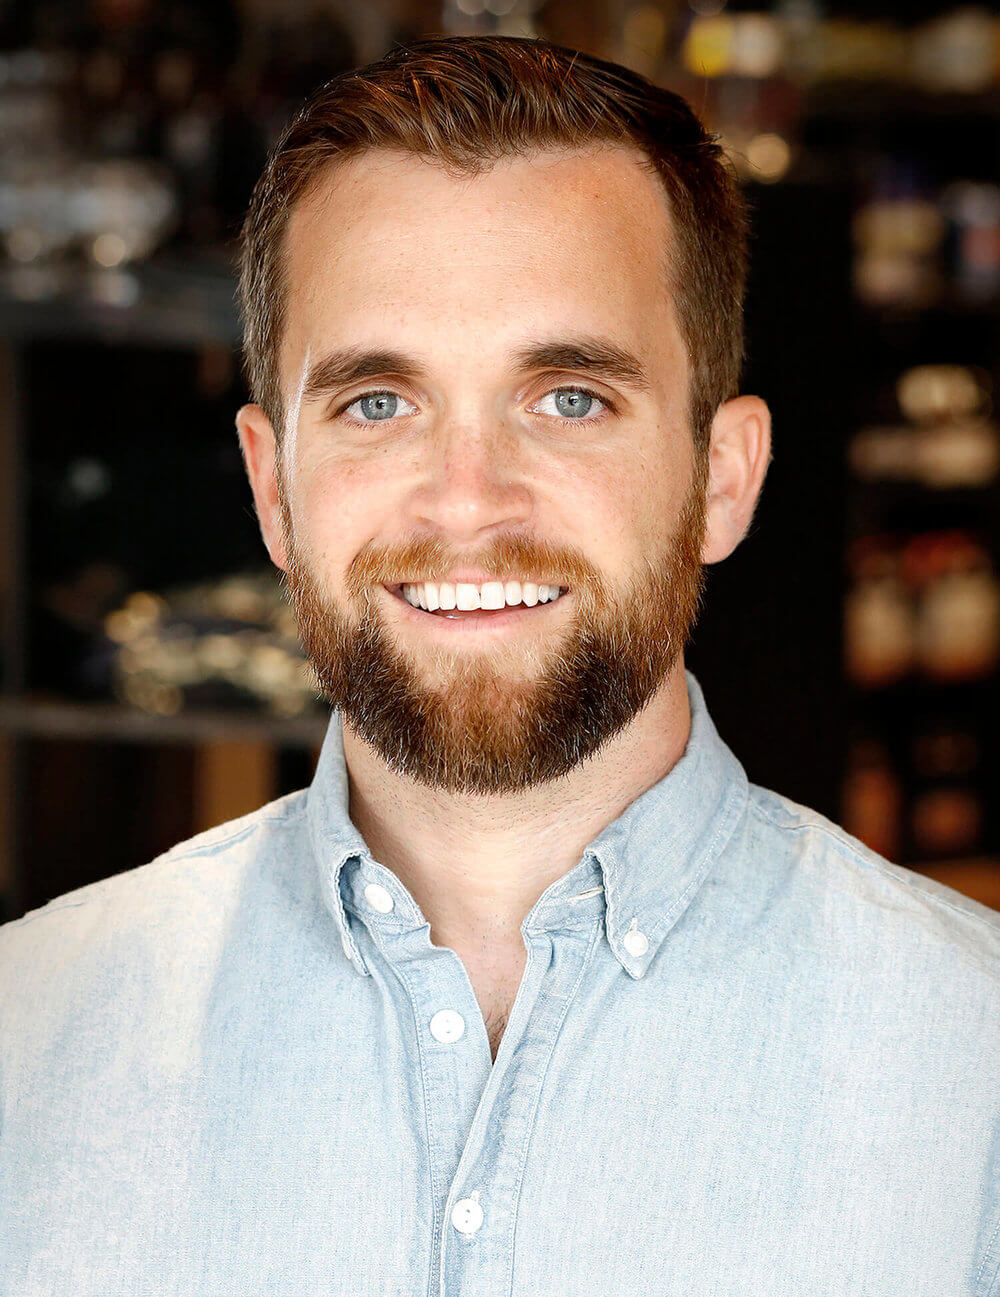 Headshot of Sean Sullivan, executive director of the Maine Brewers' Guild, at the Craft Beer Cellar in Portland